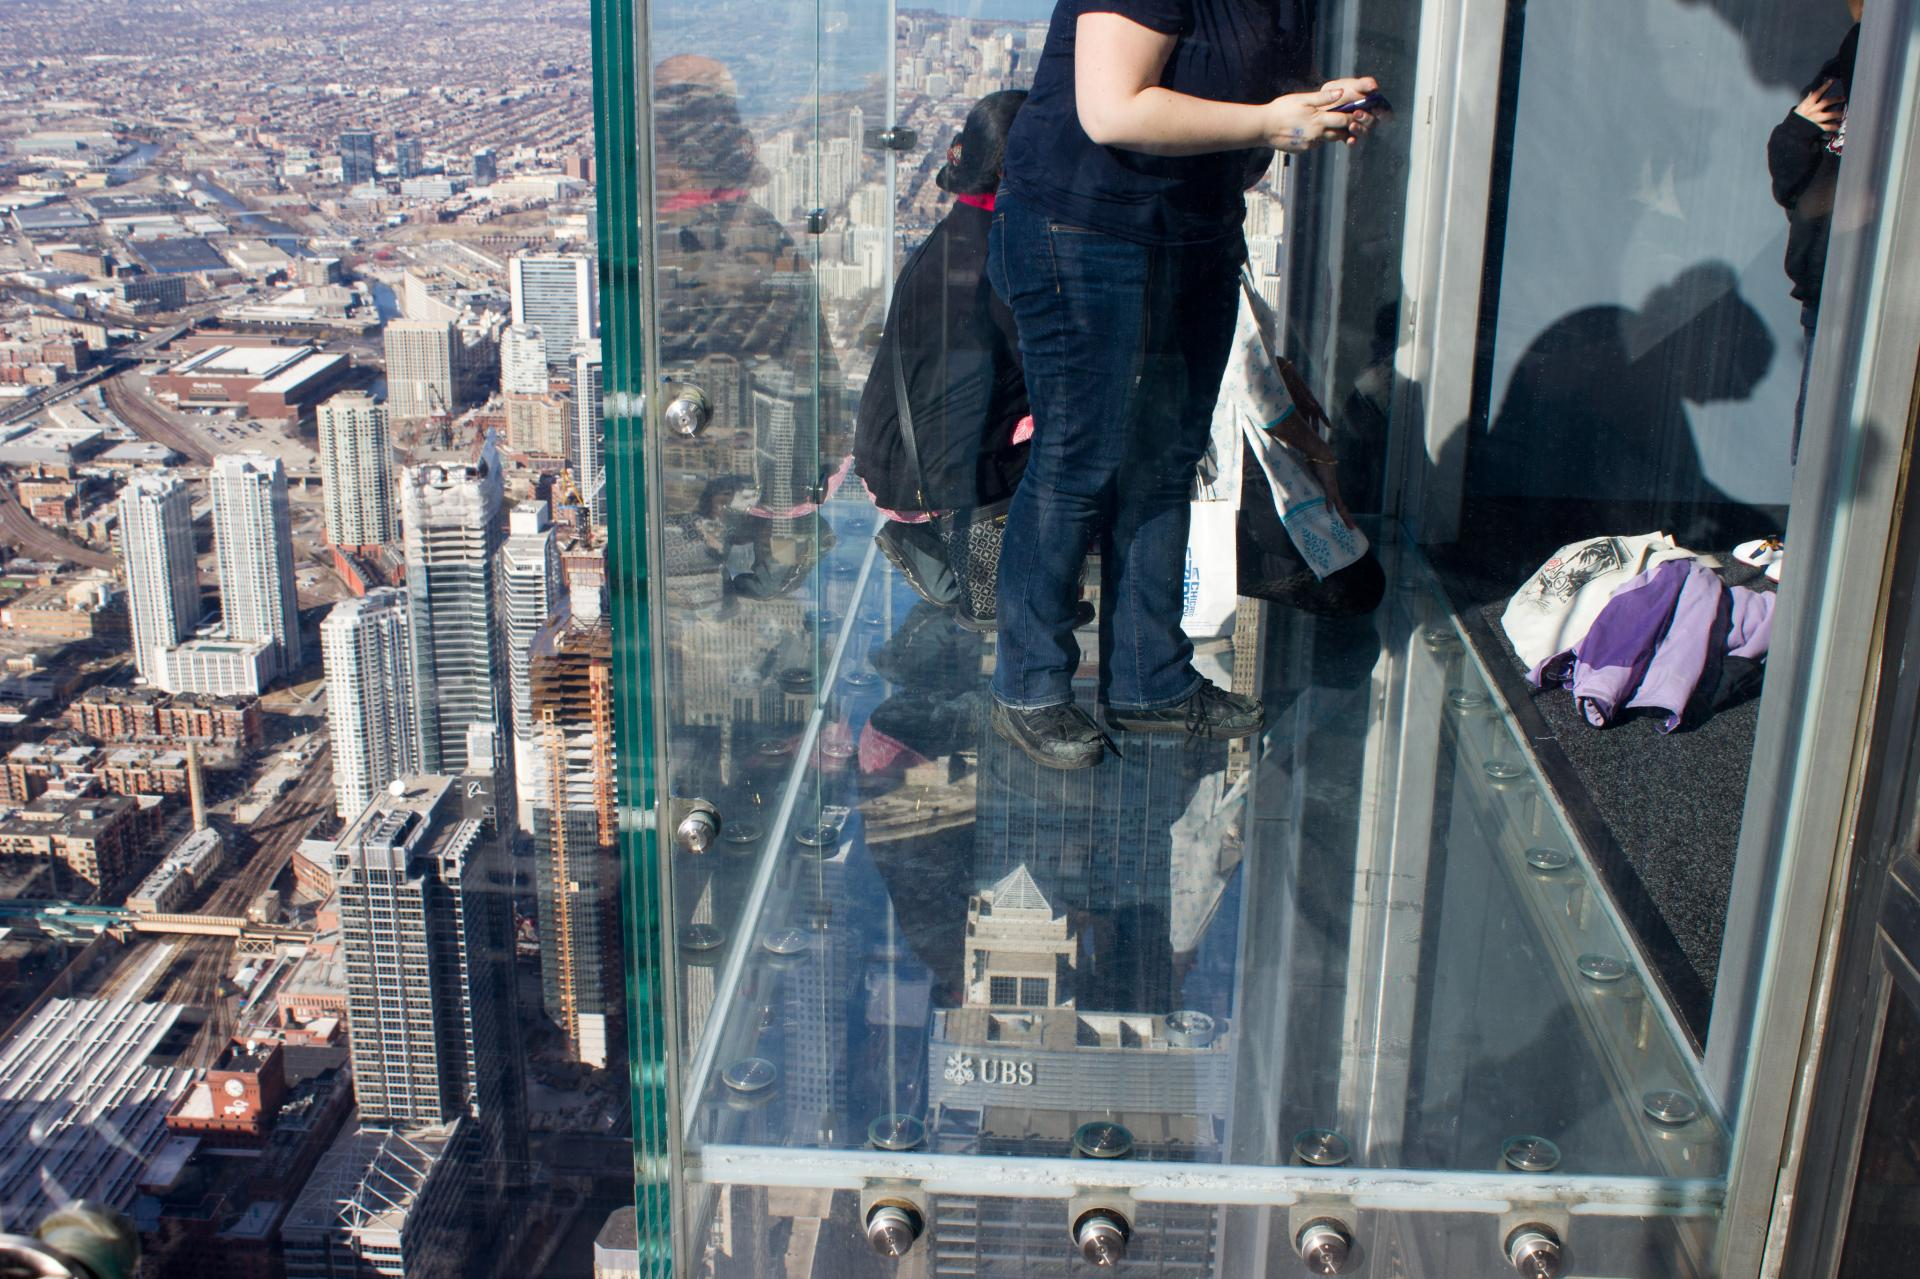 Willis Tower, Ledge